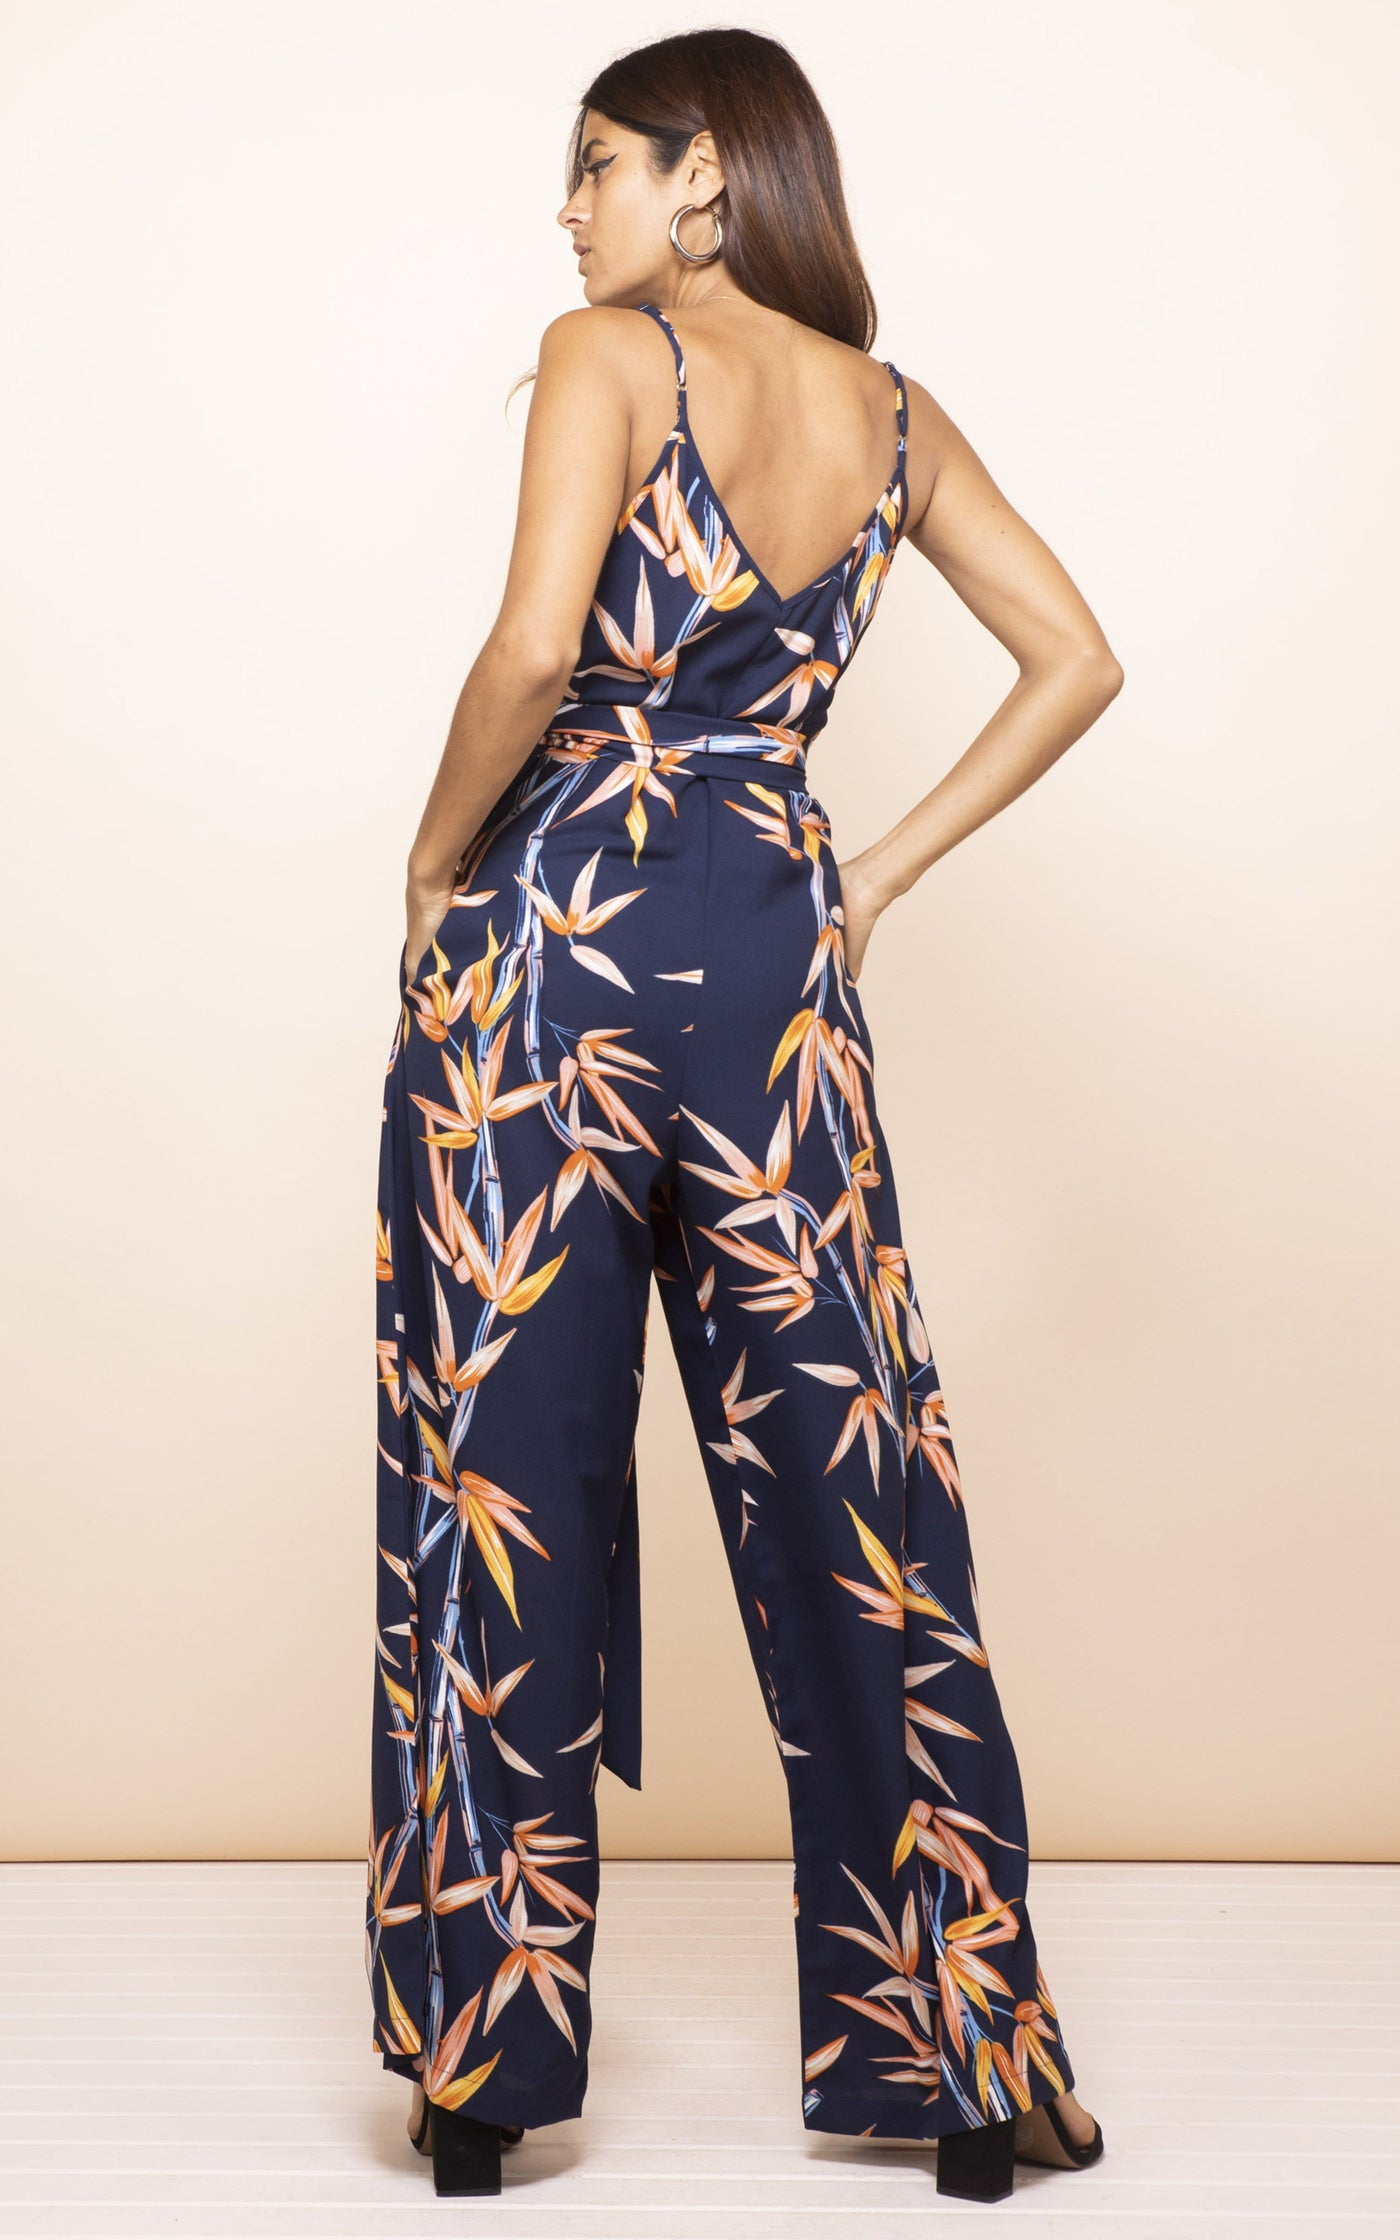 Backward-facing model with hands in pockets wears Gabriella Jumpsuit in navy bamboo print